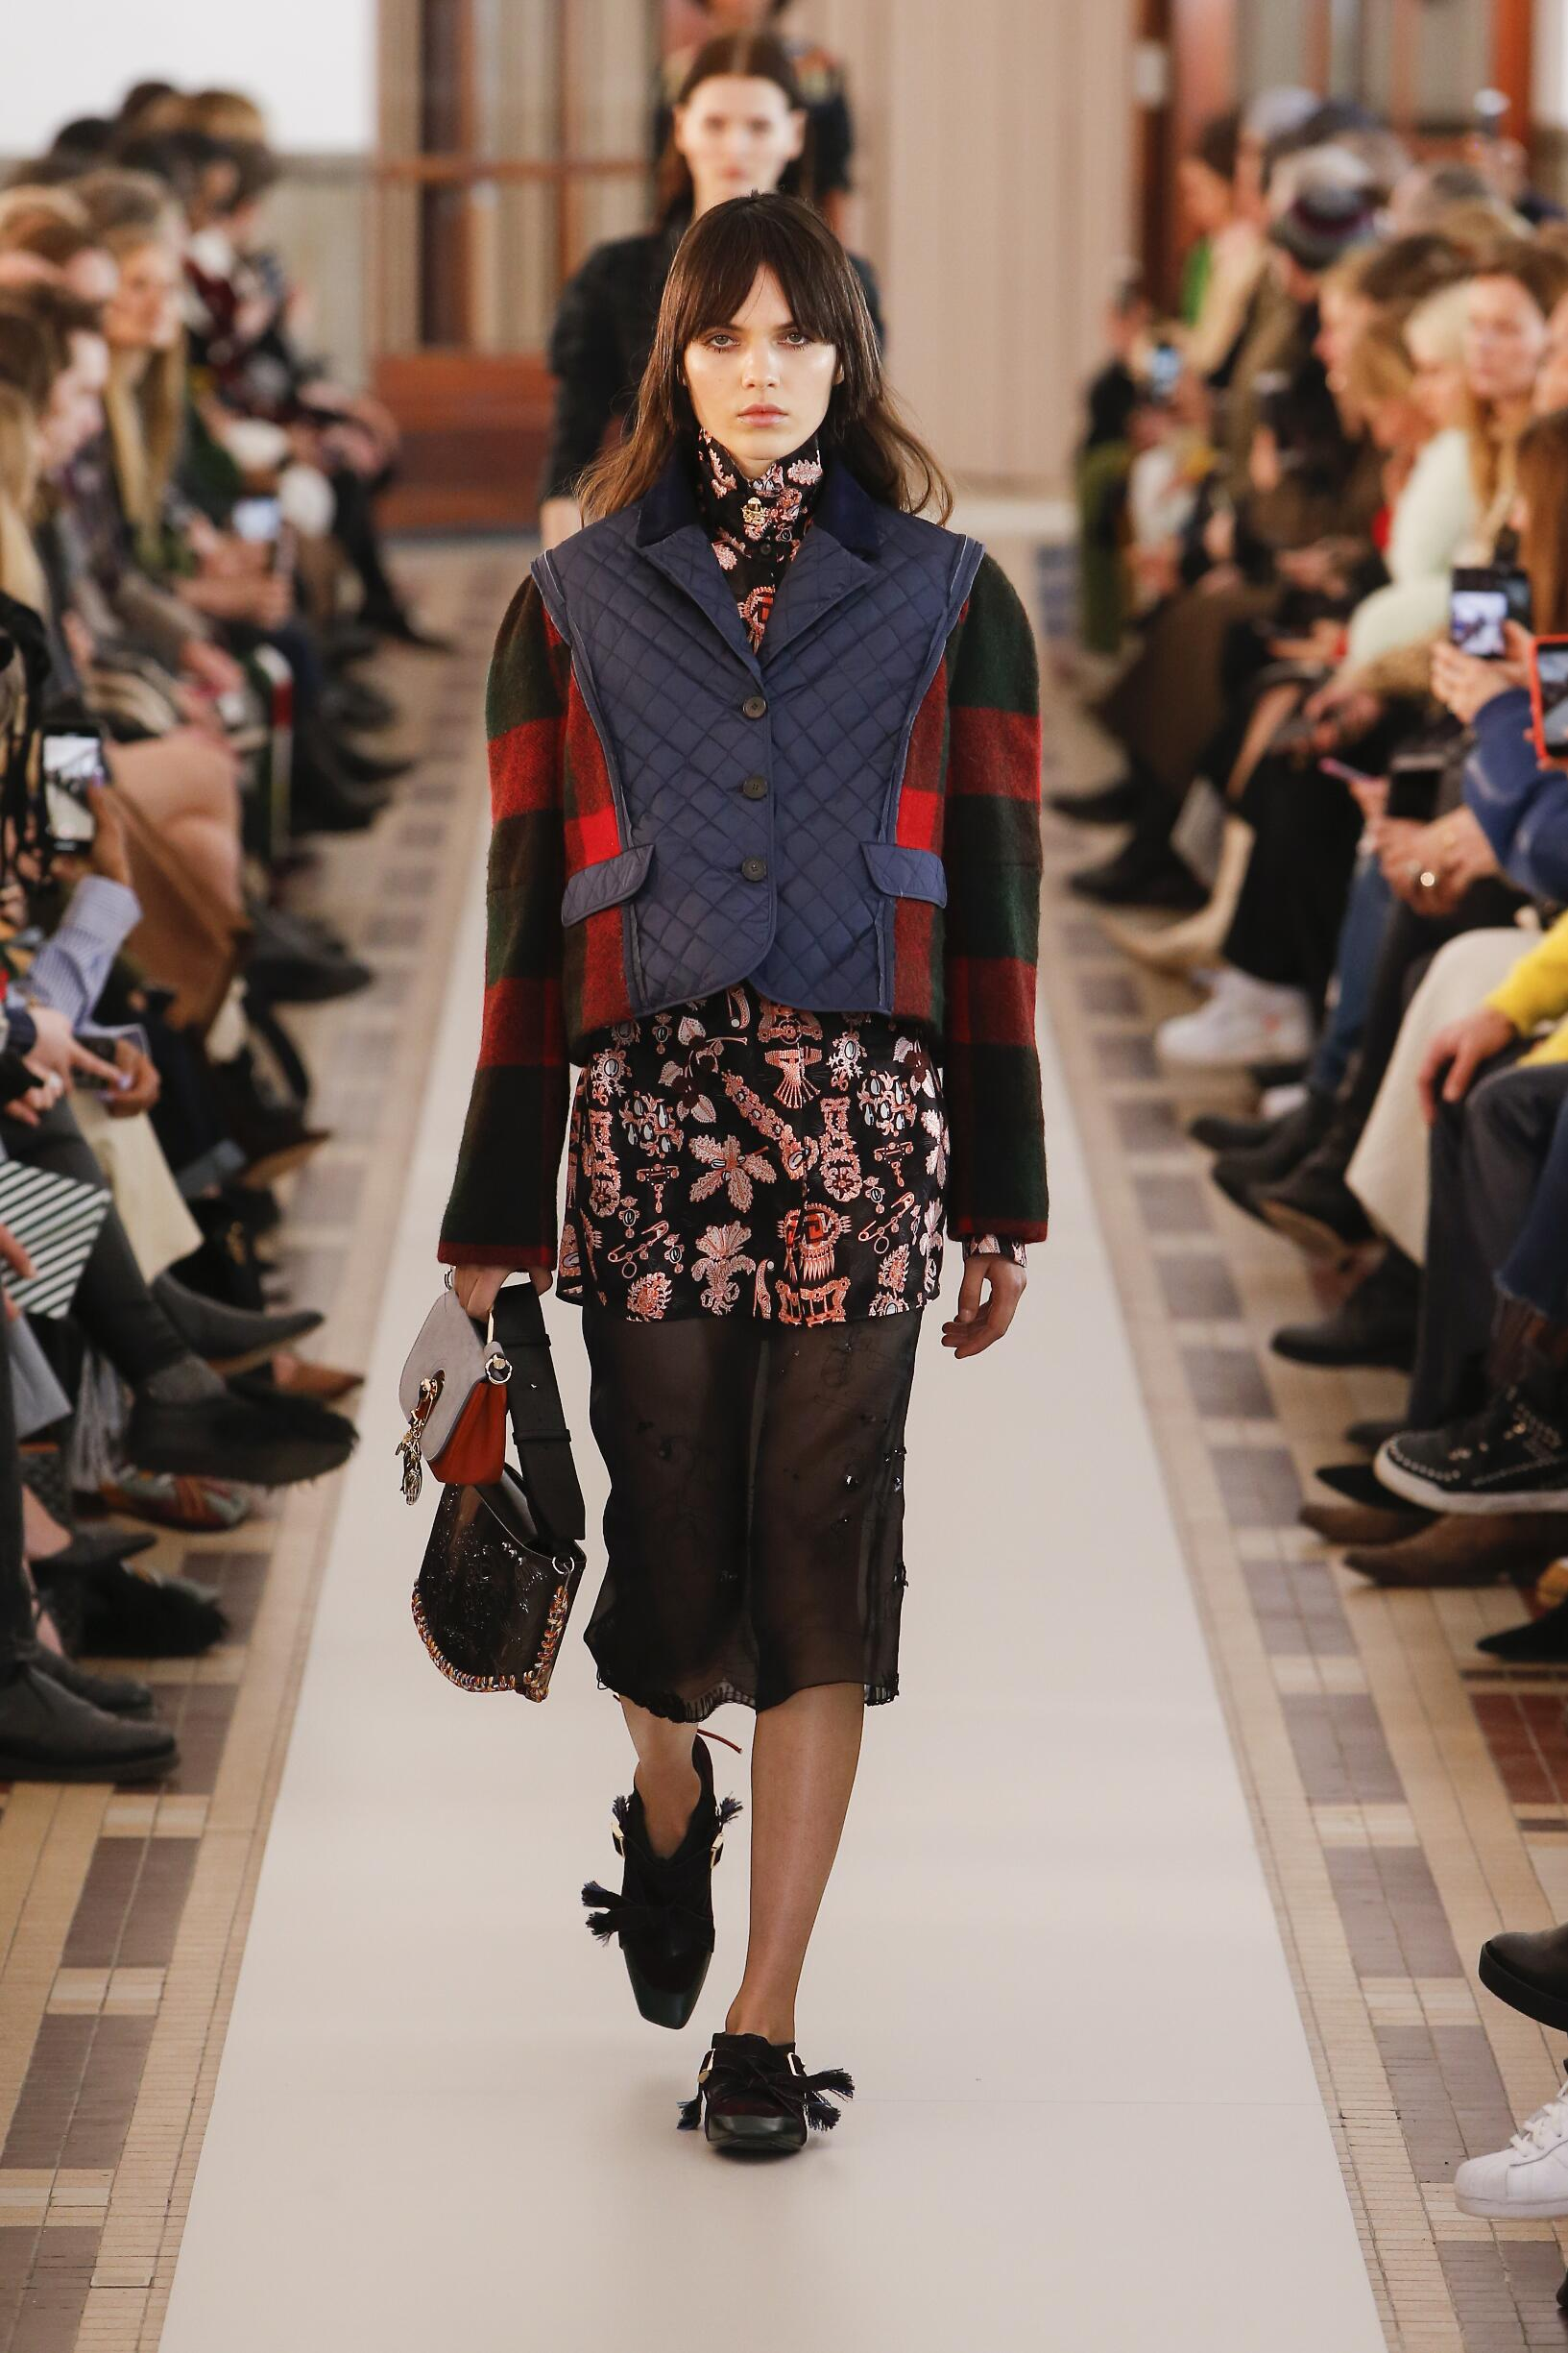 Carven Woman Style 2018